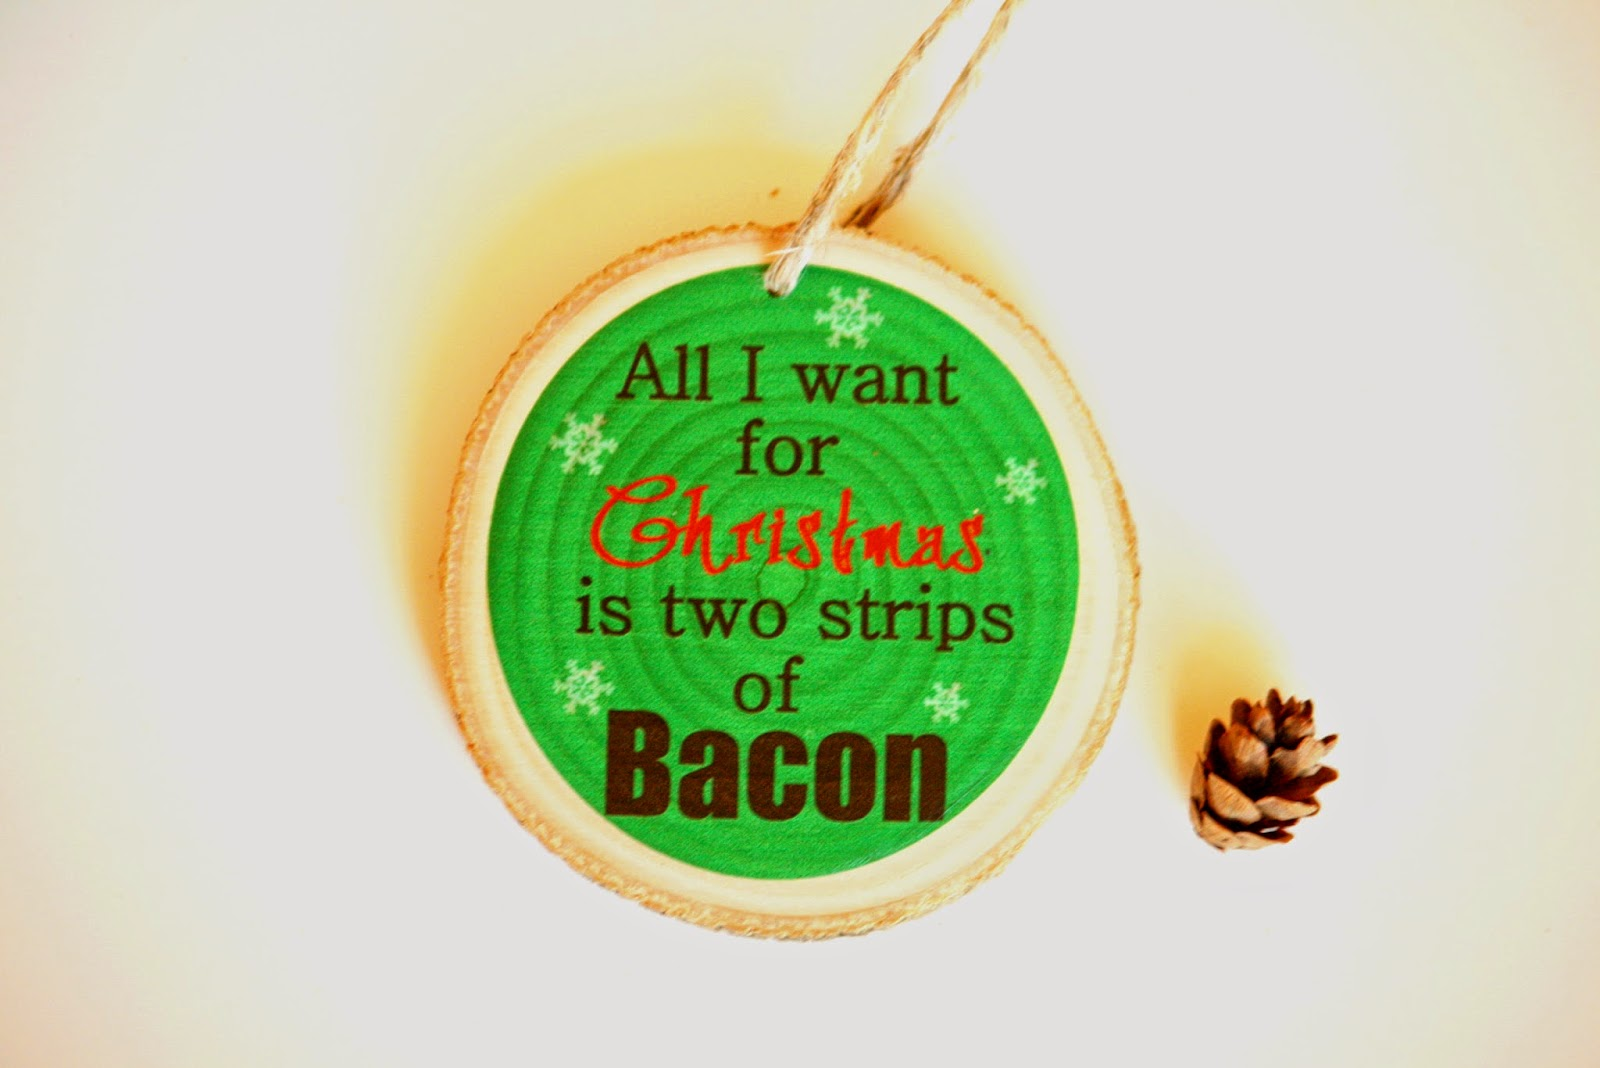 Bacon ornaments funny ornaments quirky ornaments gag for Quirky ornaments